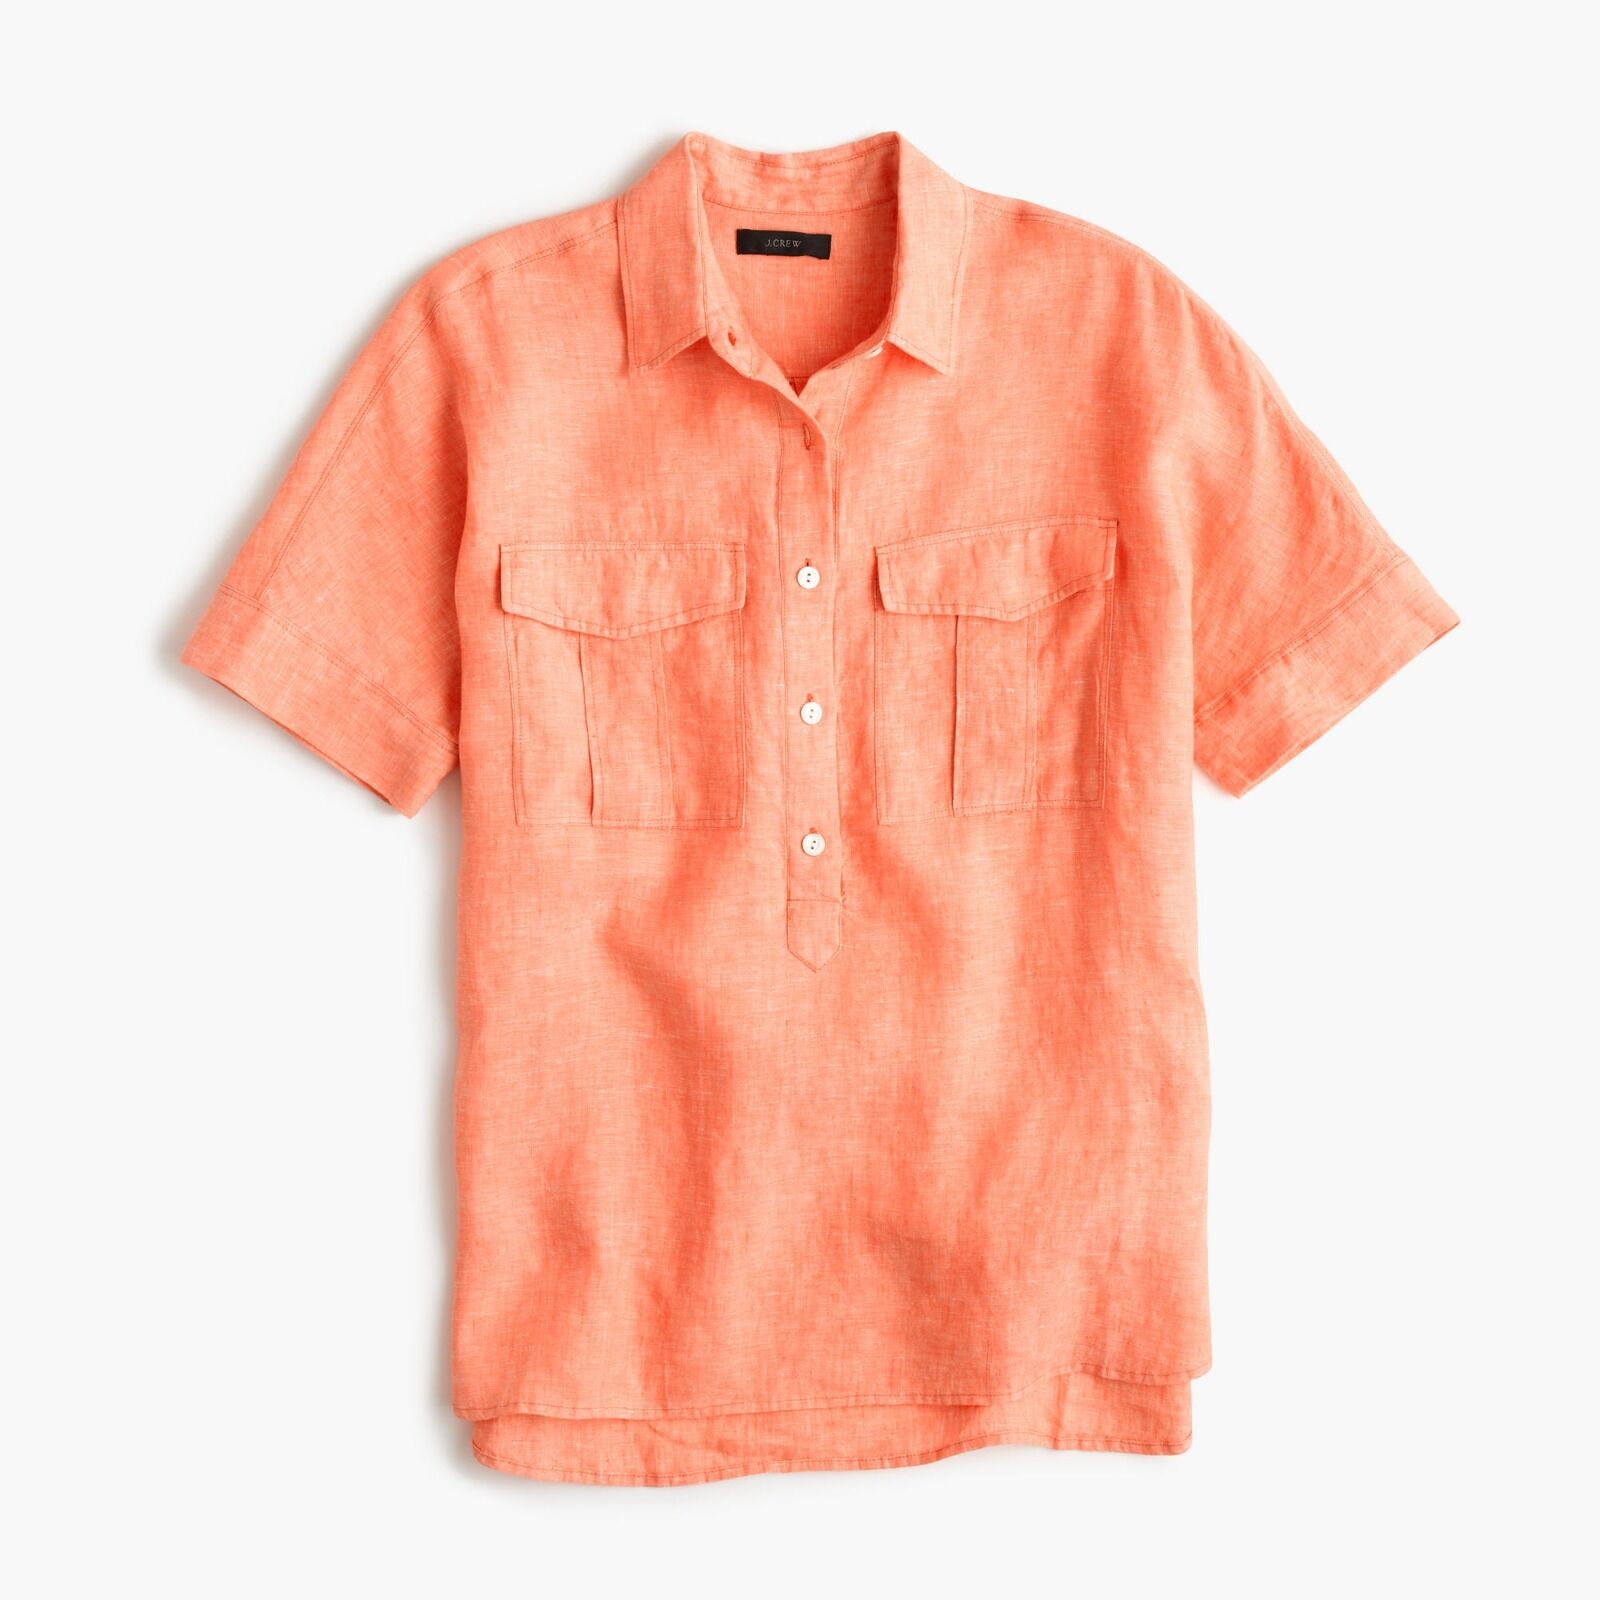 NEW J.CREW Short-sleeve popover shirt in Irish linen Sz 6T Golden Rosa Coral Top